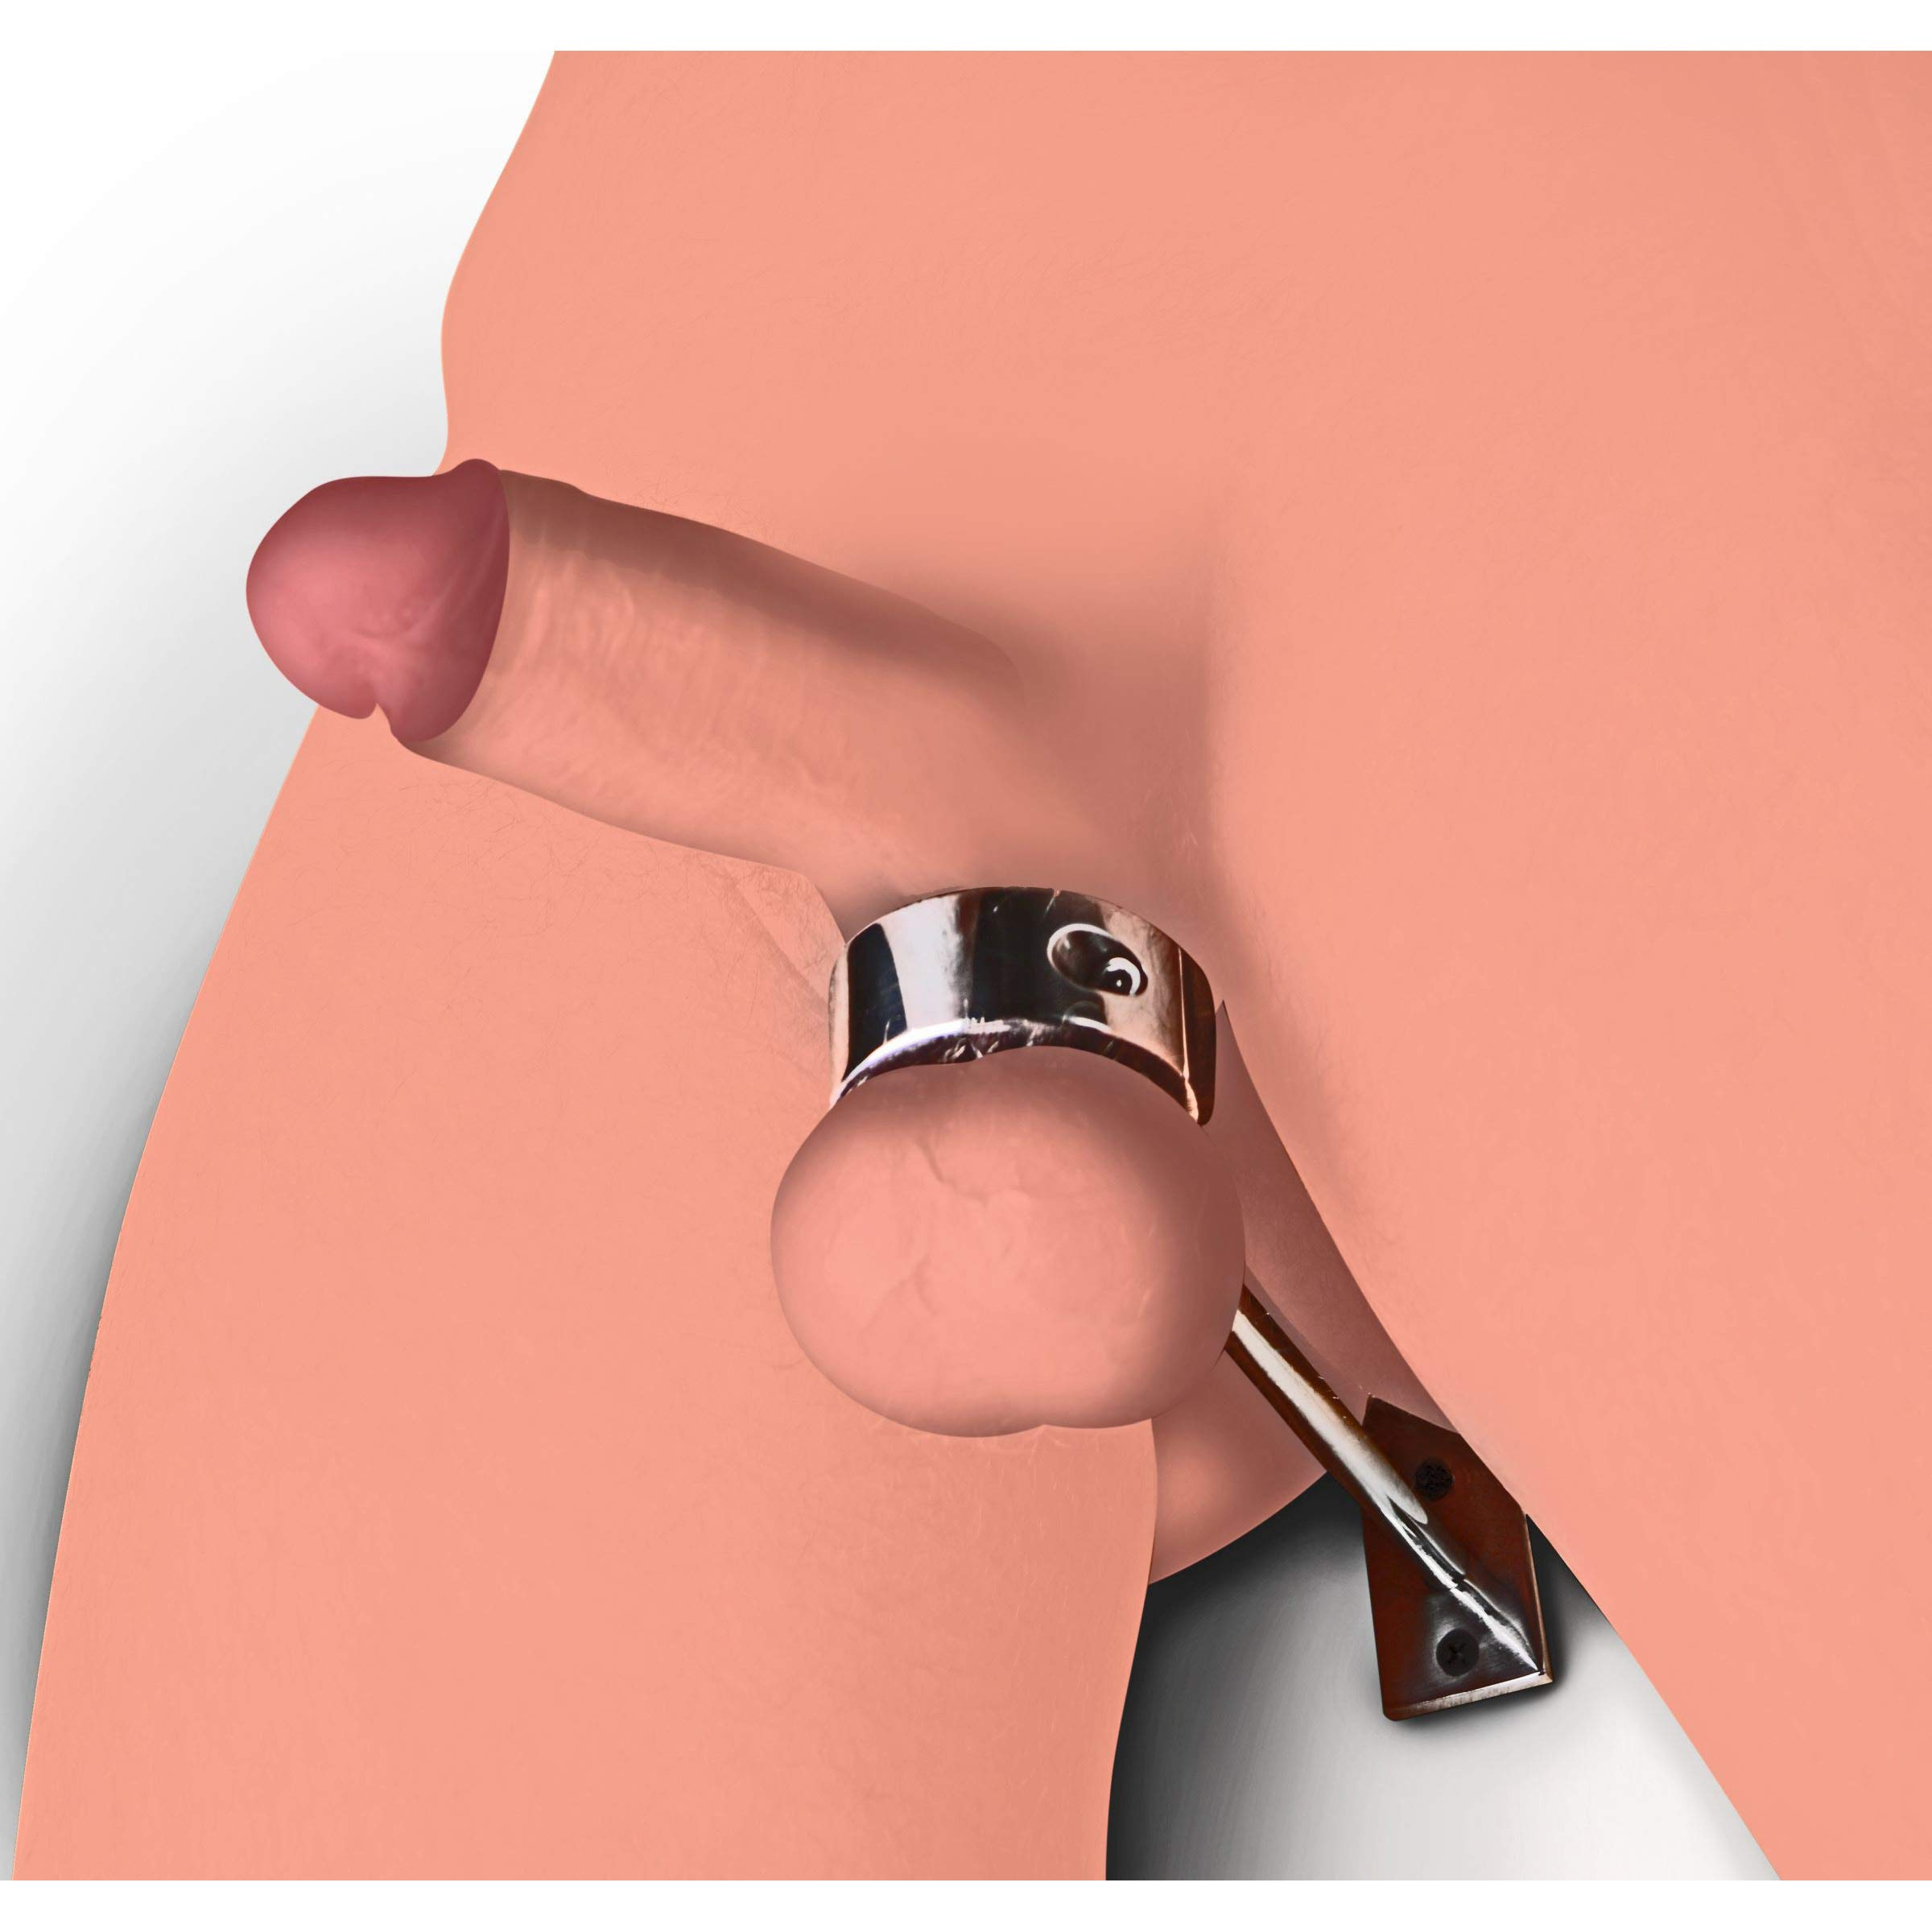 Master Series Locking Mounted CT Scrotum Cuff with Bar by Master Series